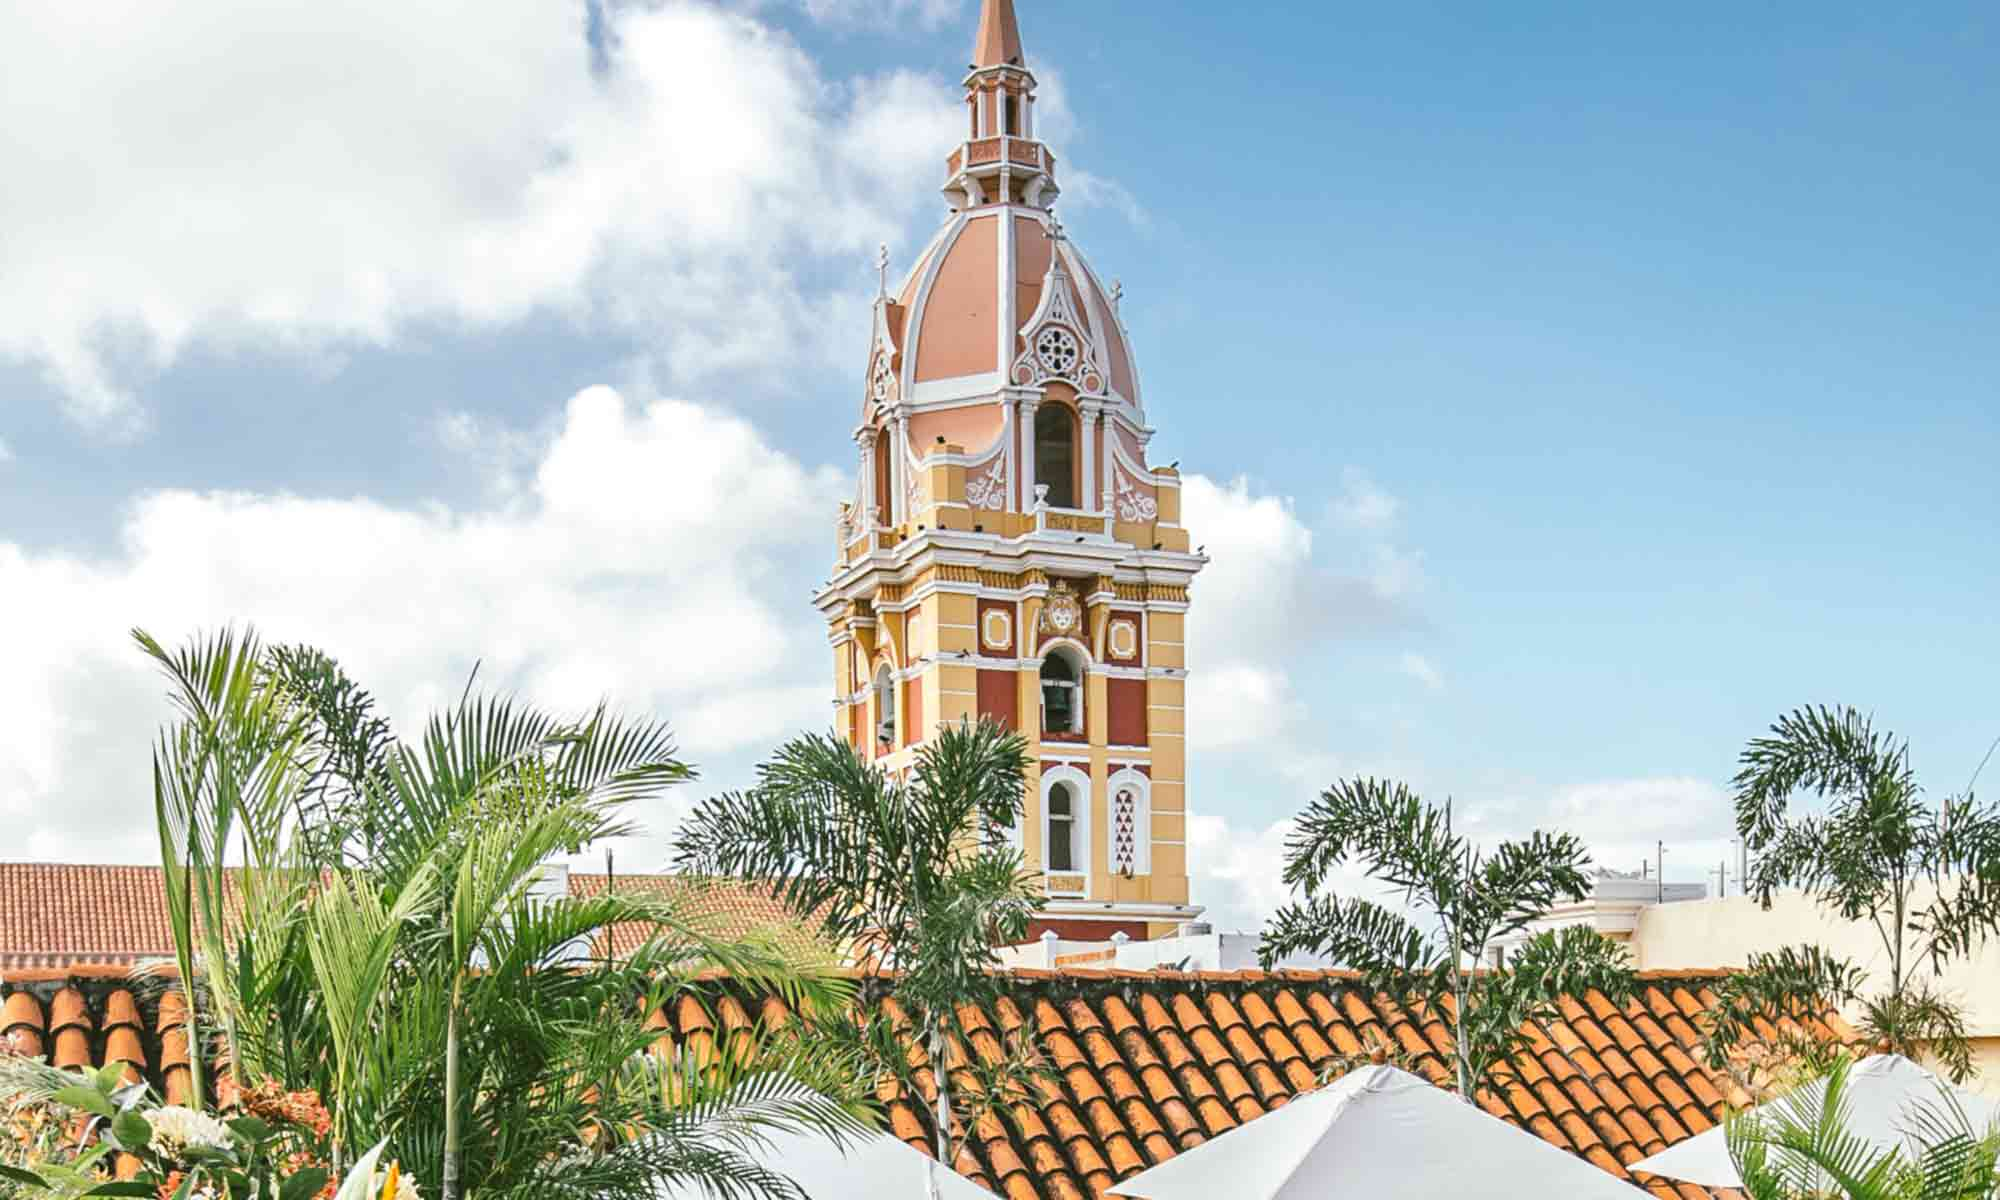 Famous view of the cathedral spire from the Amarla rooftop in Cartagena walled city